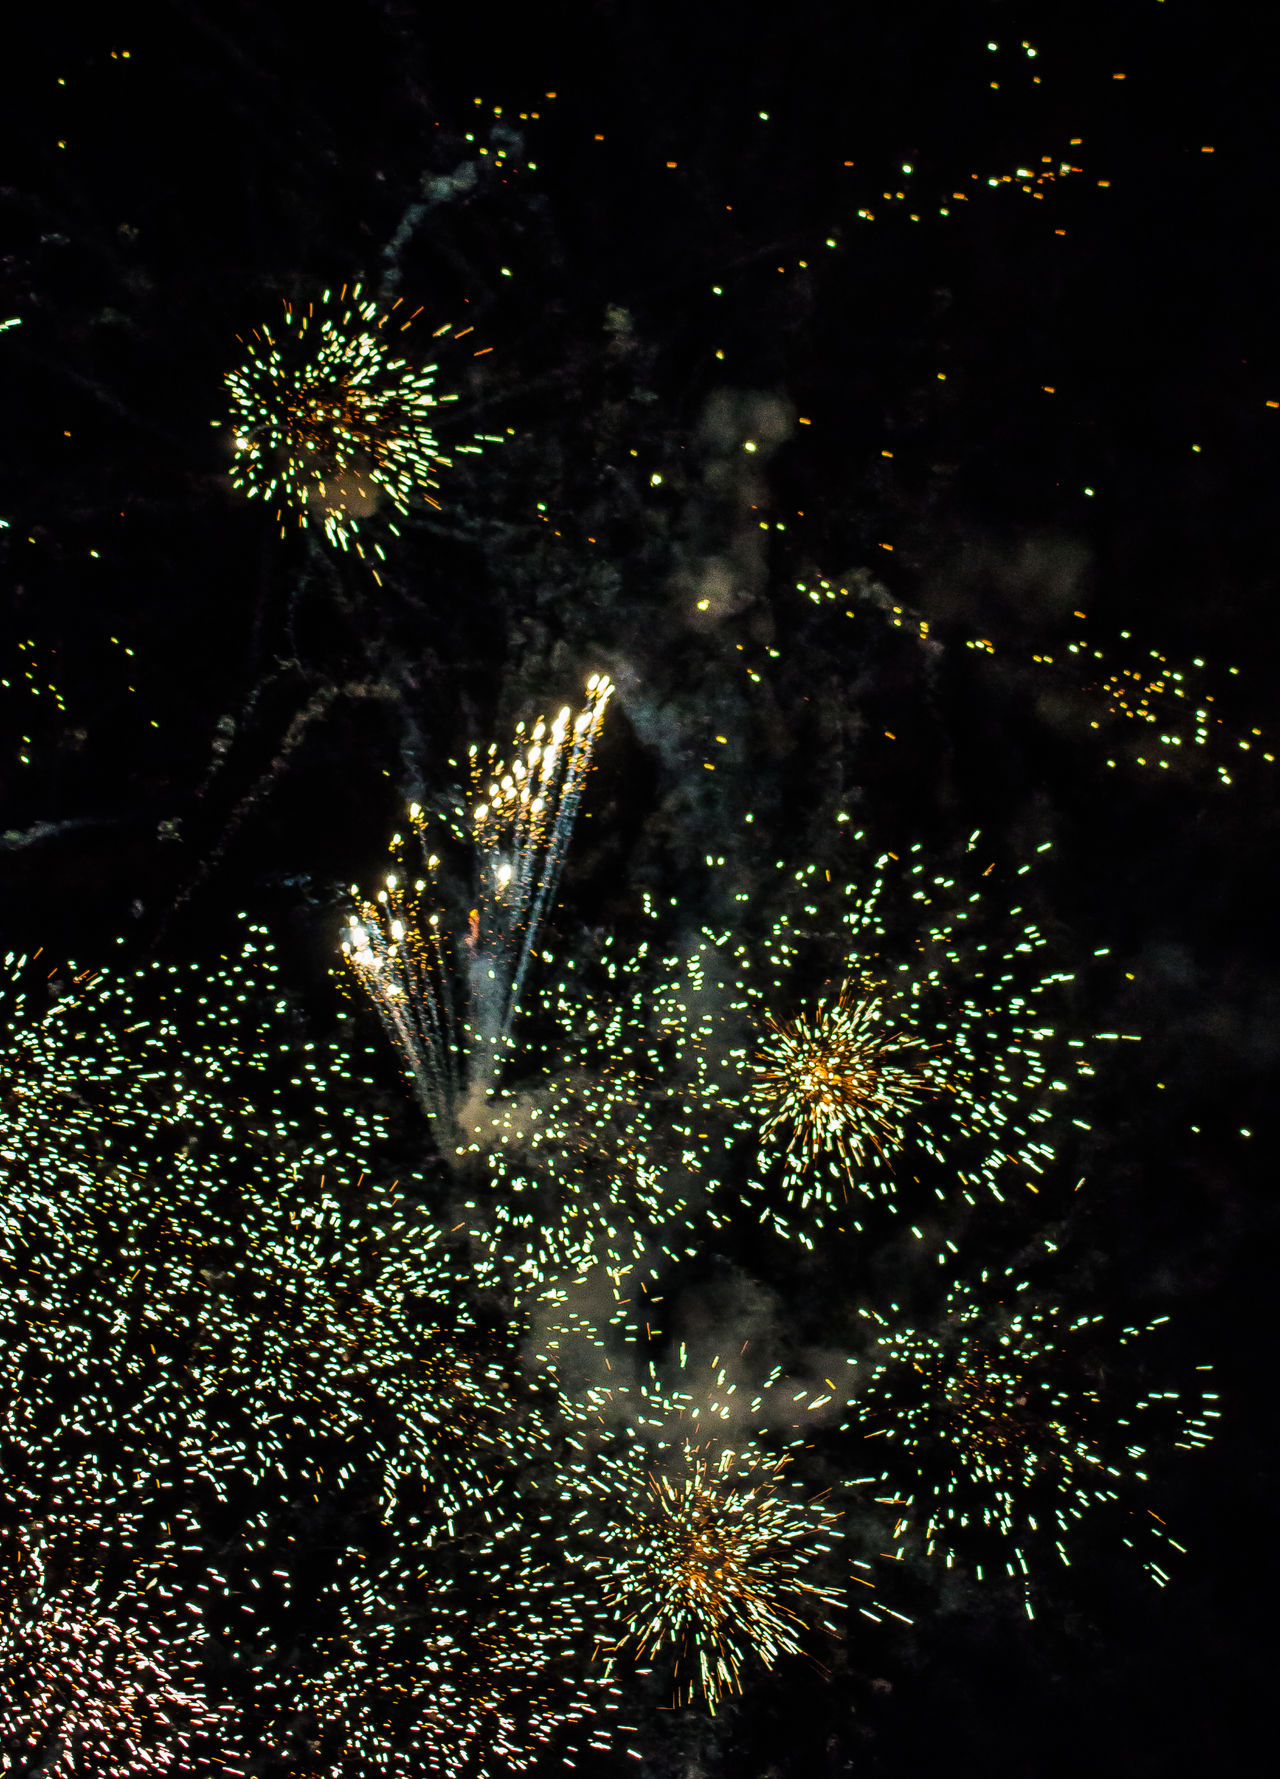 Canada Day Celebration Celebration Dark Explosion Of Color EyeEm EyeEm Best Shots Firework Display Firework Photography Fireworks Glowing Having Fun Holiday Illuminated July 1st Light Motion Night Night Photography No People Ontario, Canada Outdoors Showcase August Sky The Week On EyeEm